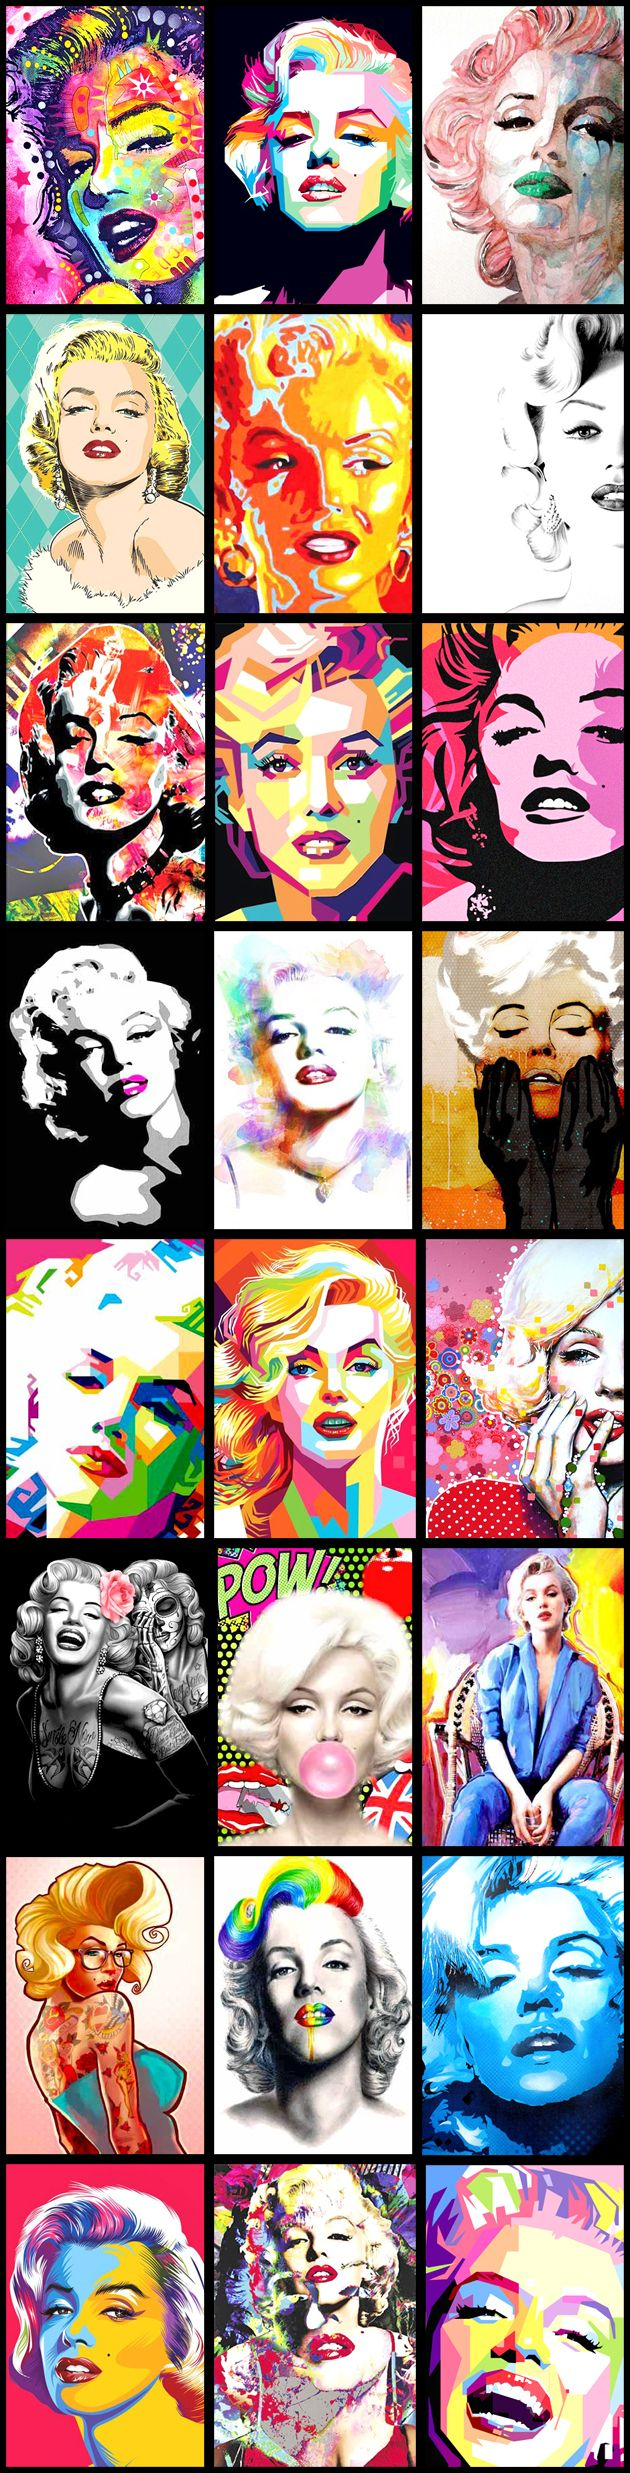 Okay,so I have been going through my dream journals and I have found the date where I was shown the dream of Marilyn through her eyes, it was the 9th December 2013.She showed me many things in the dream,from the abuse she received as a child,the fact she was trying to run away from it all,down streets,how she was kept away from her boyfriend at the time in her childhood, running across a beach with other children playing.On 11/11/15 I went searching for the validity and it was In her last…